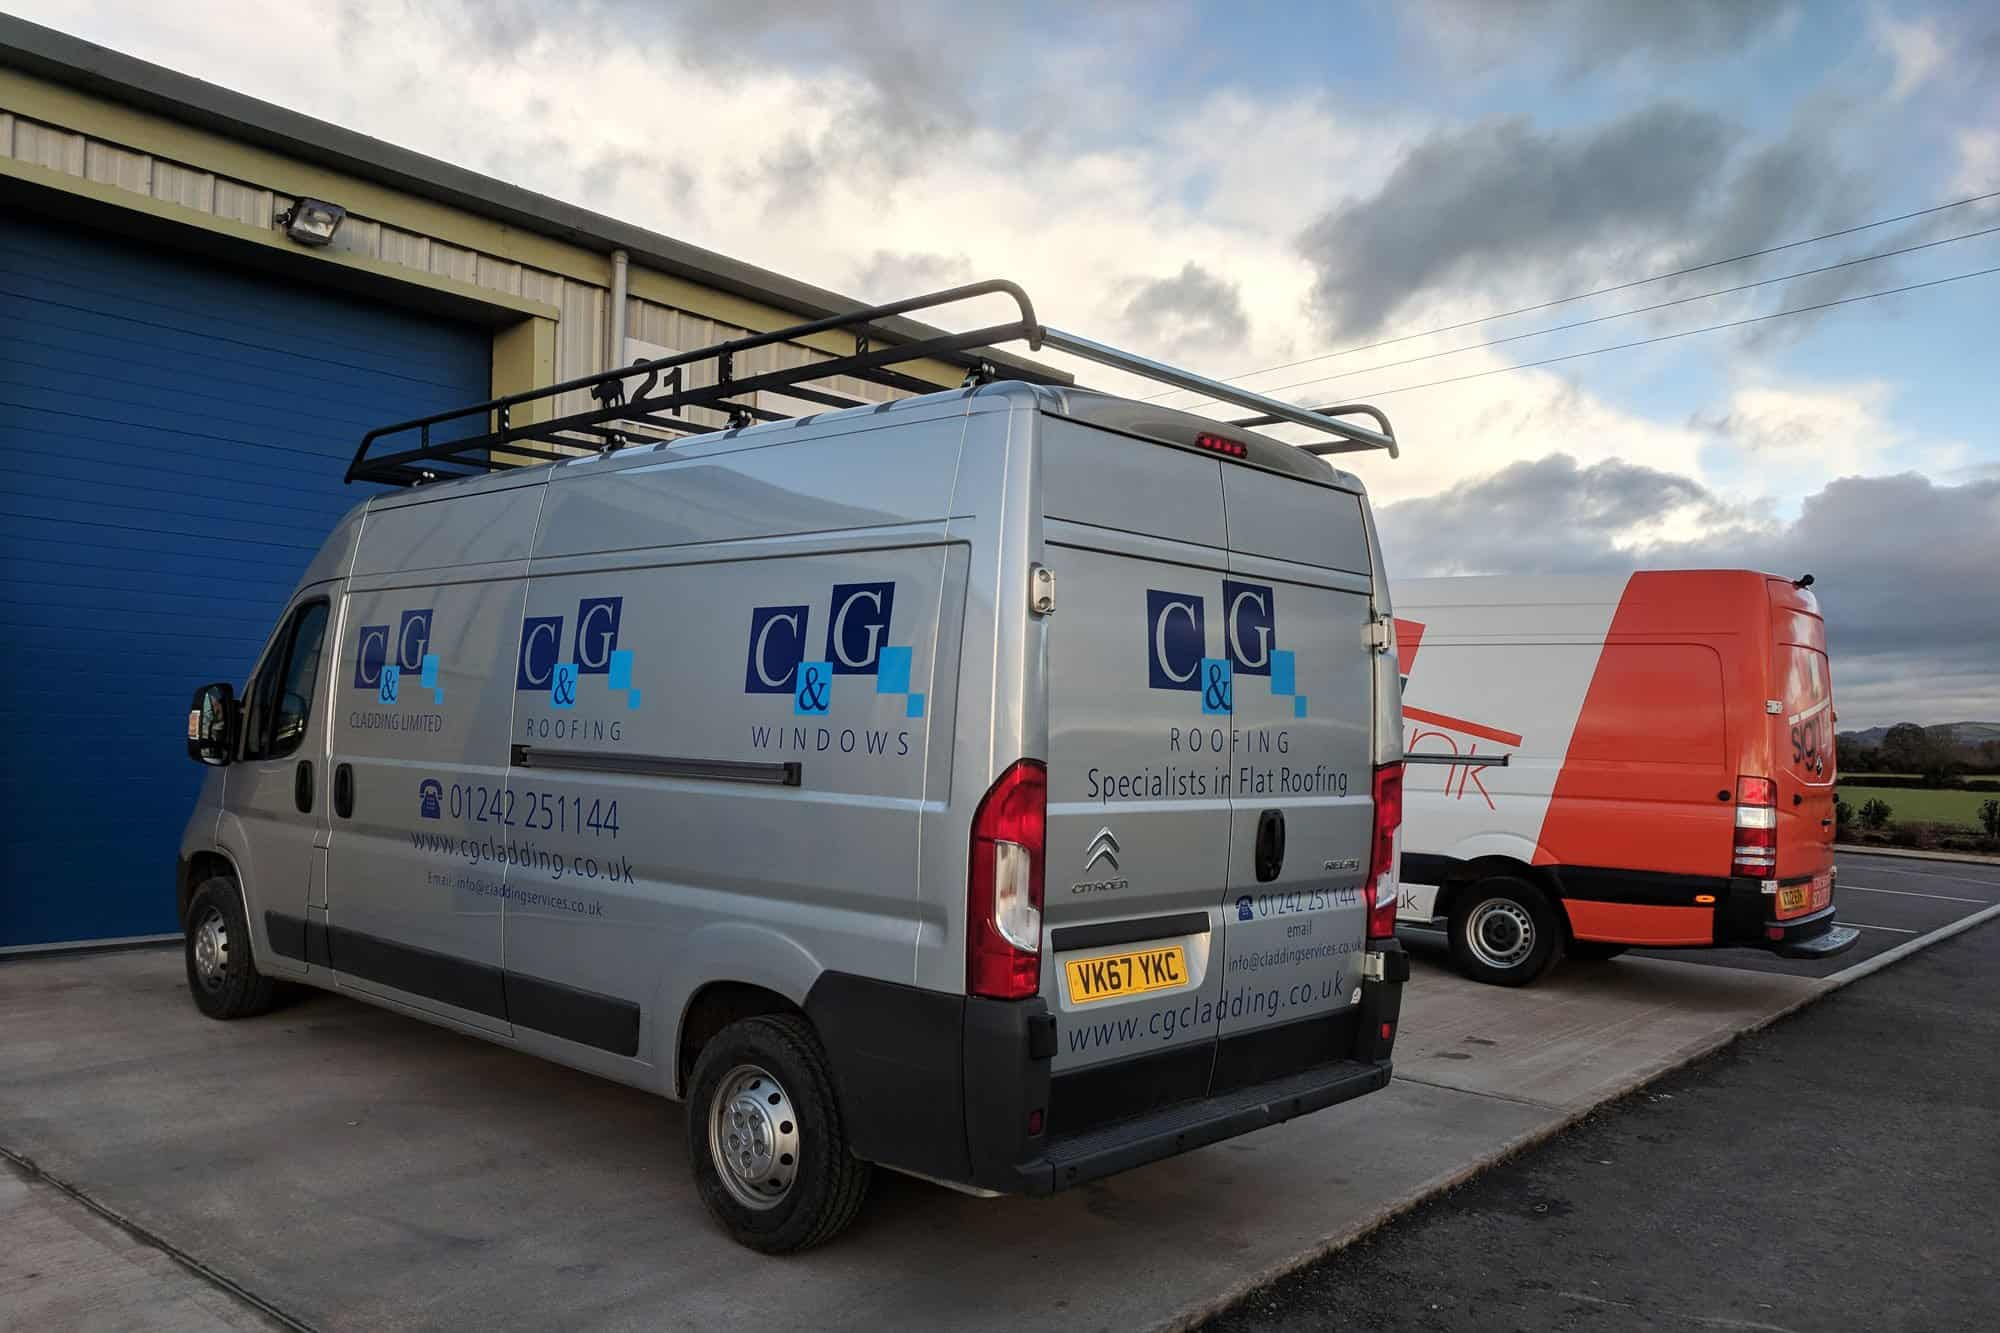 C&G Cladding Dispatch Van